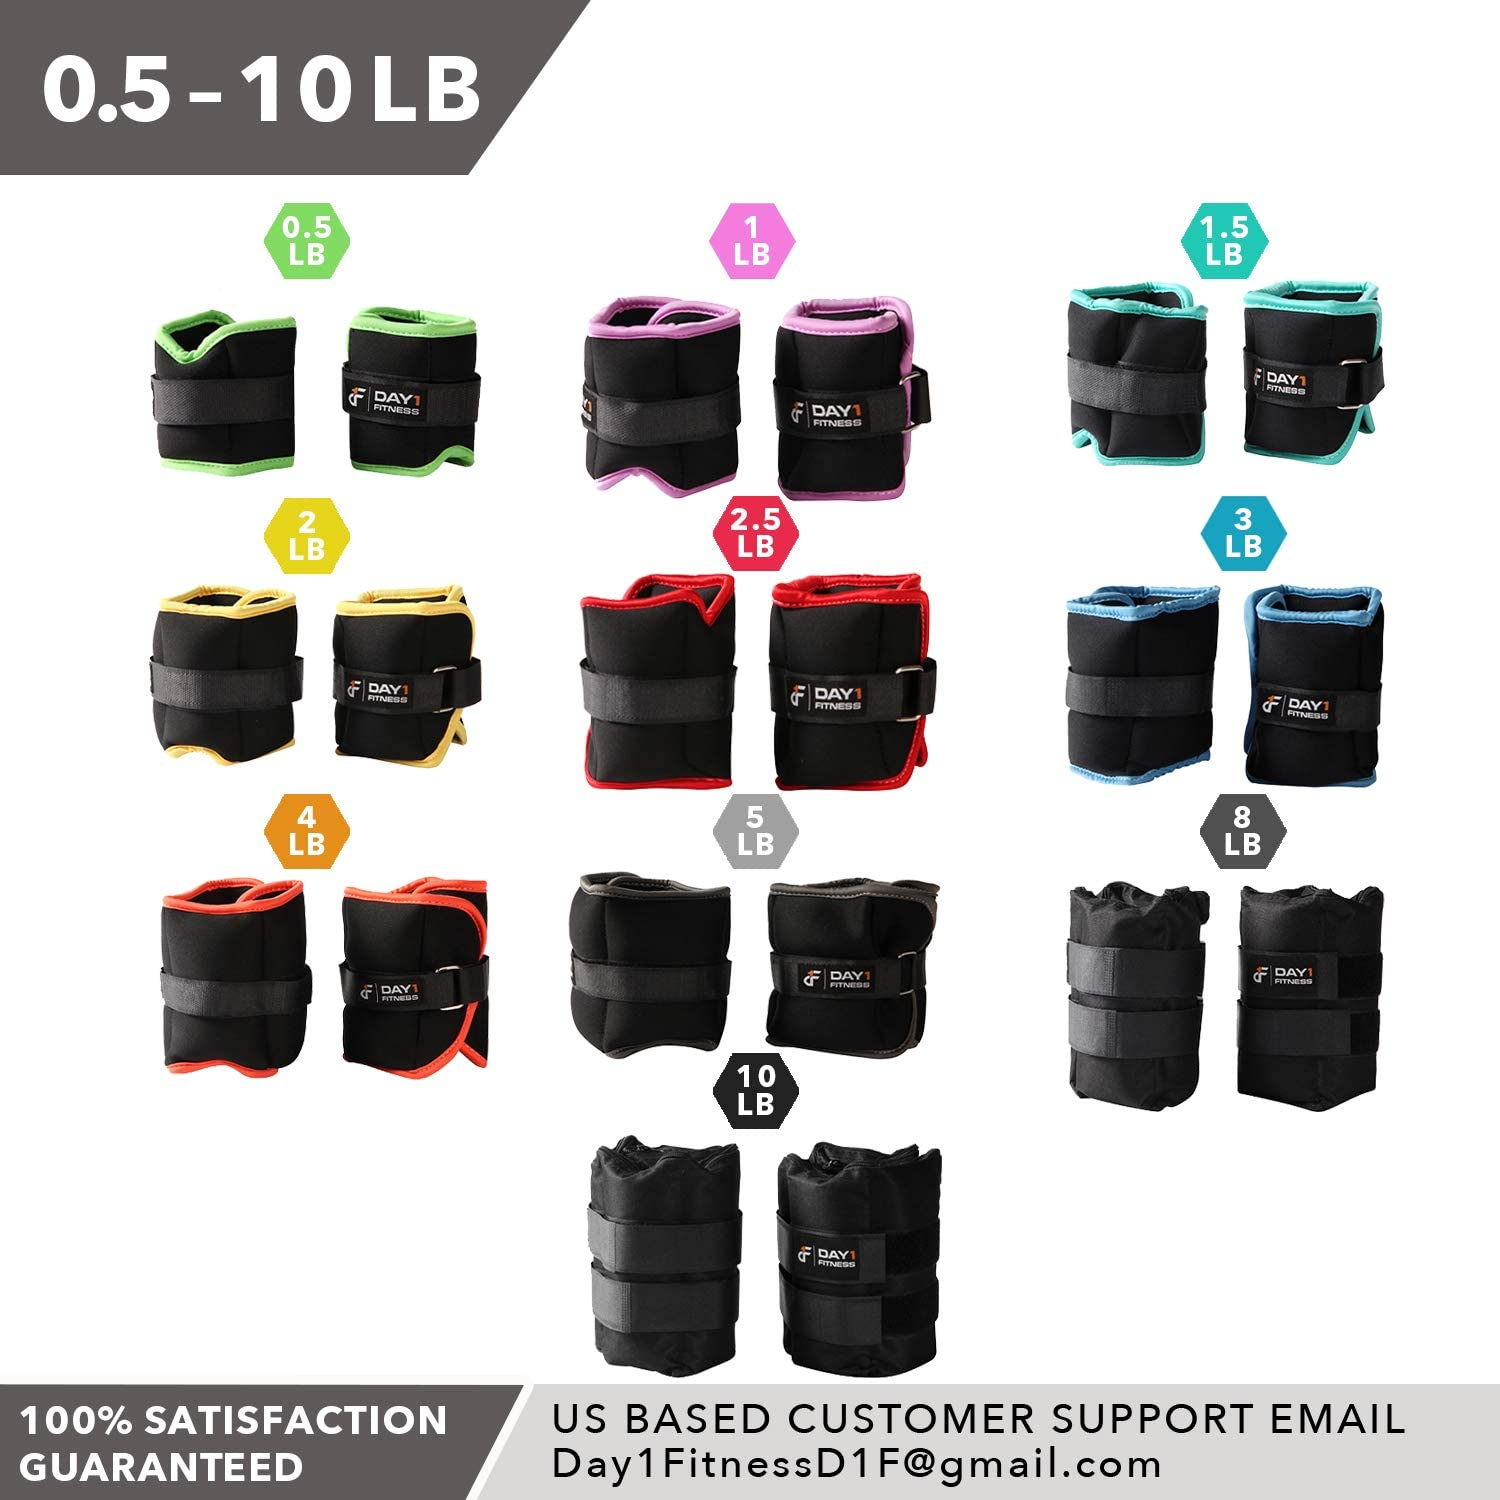 Adjustable Straps Moisture Absorbent Weight Straps for Men and Women 0.5 to 10 lbs EACH Comfortable Weights Set of 2 Breathable Ankle // Wrist Weight Pair by Day 1 Fitness- 10 Weight Options